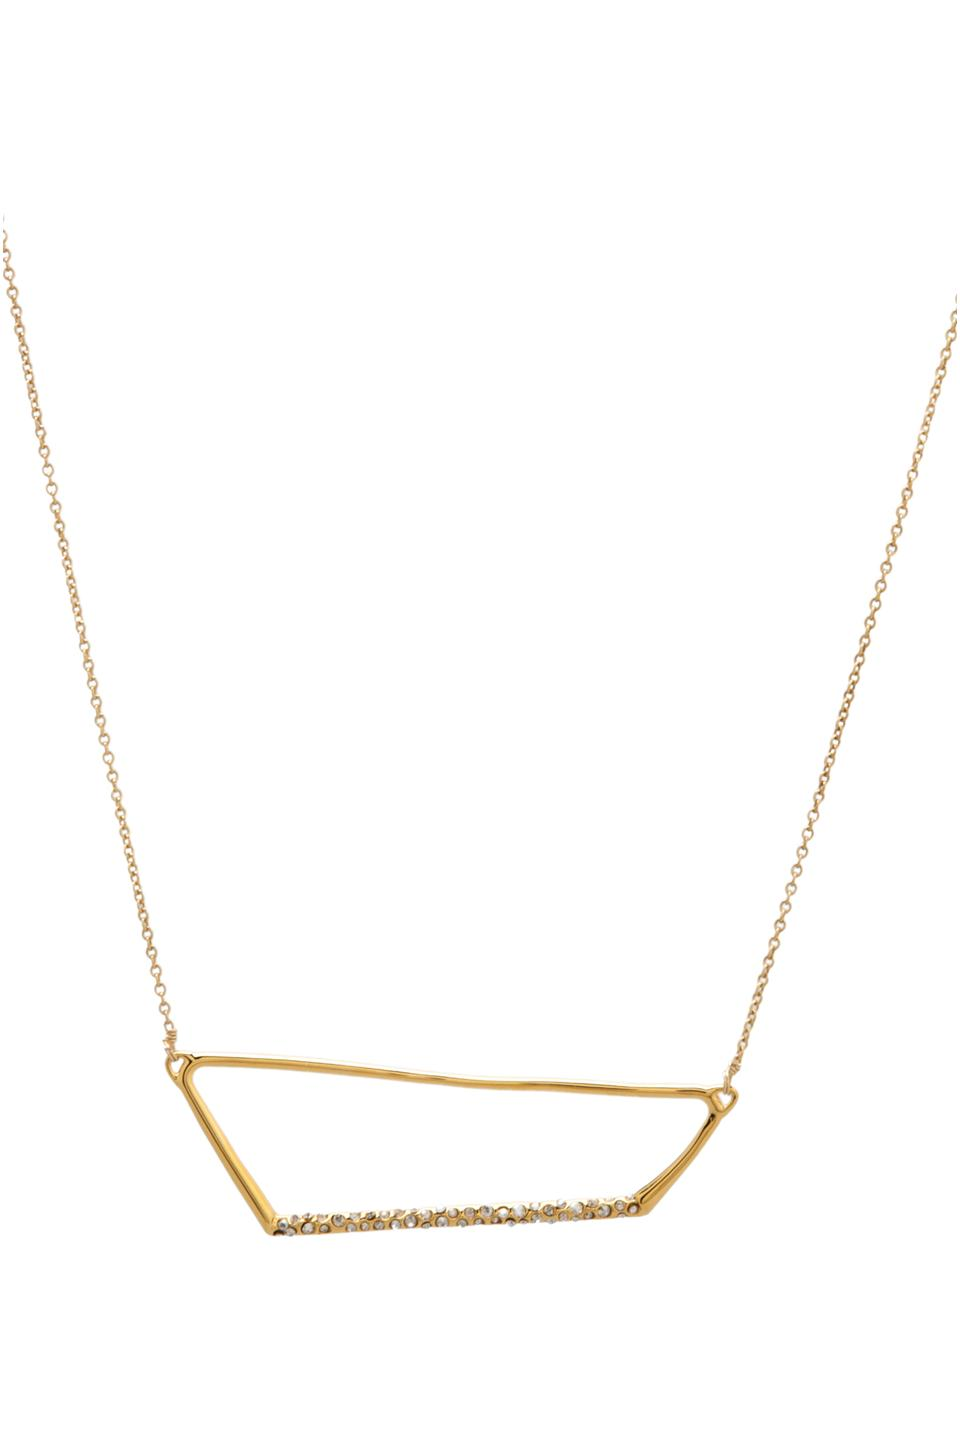 Alexis Bittar New Wave Gold Pave Trapezoid Necklace